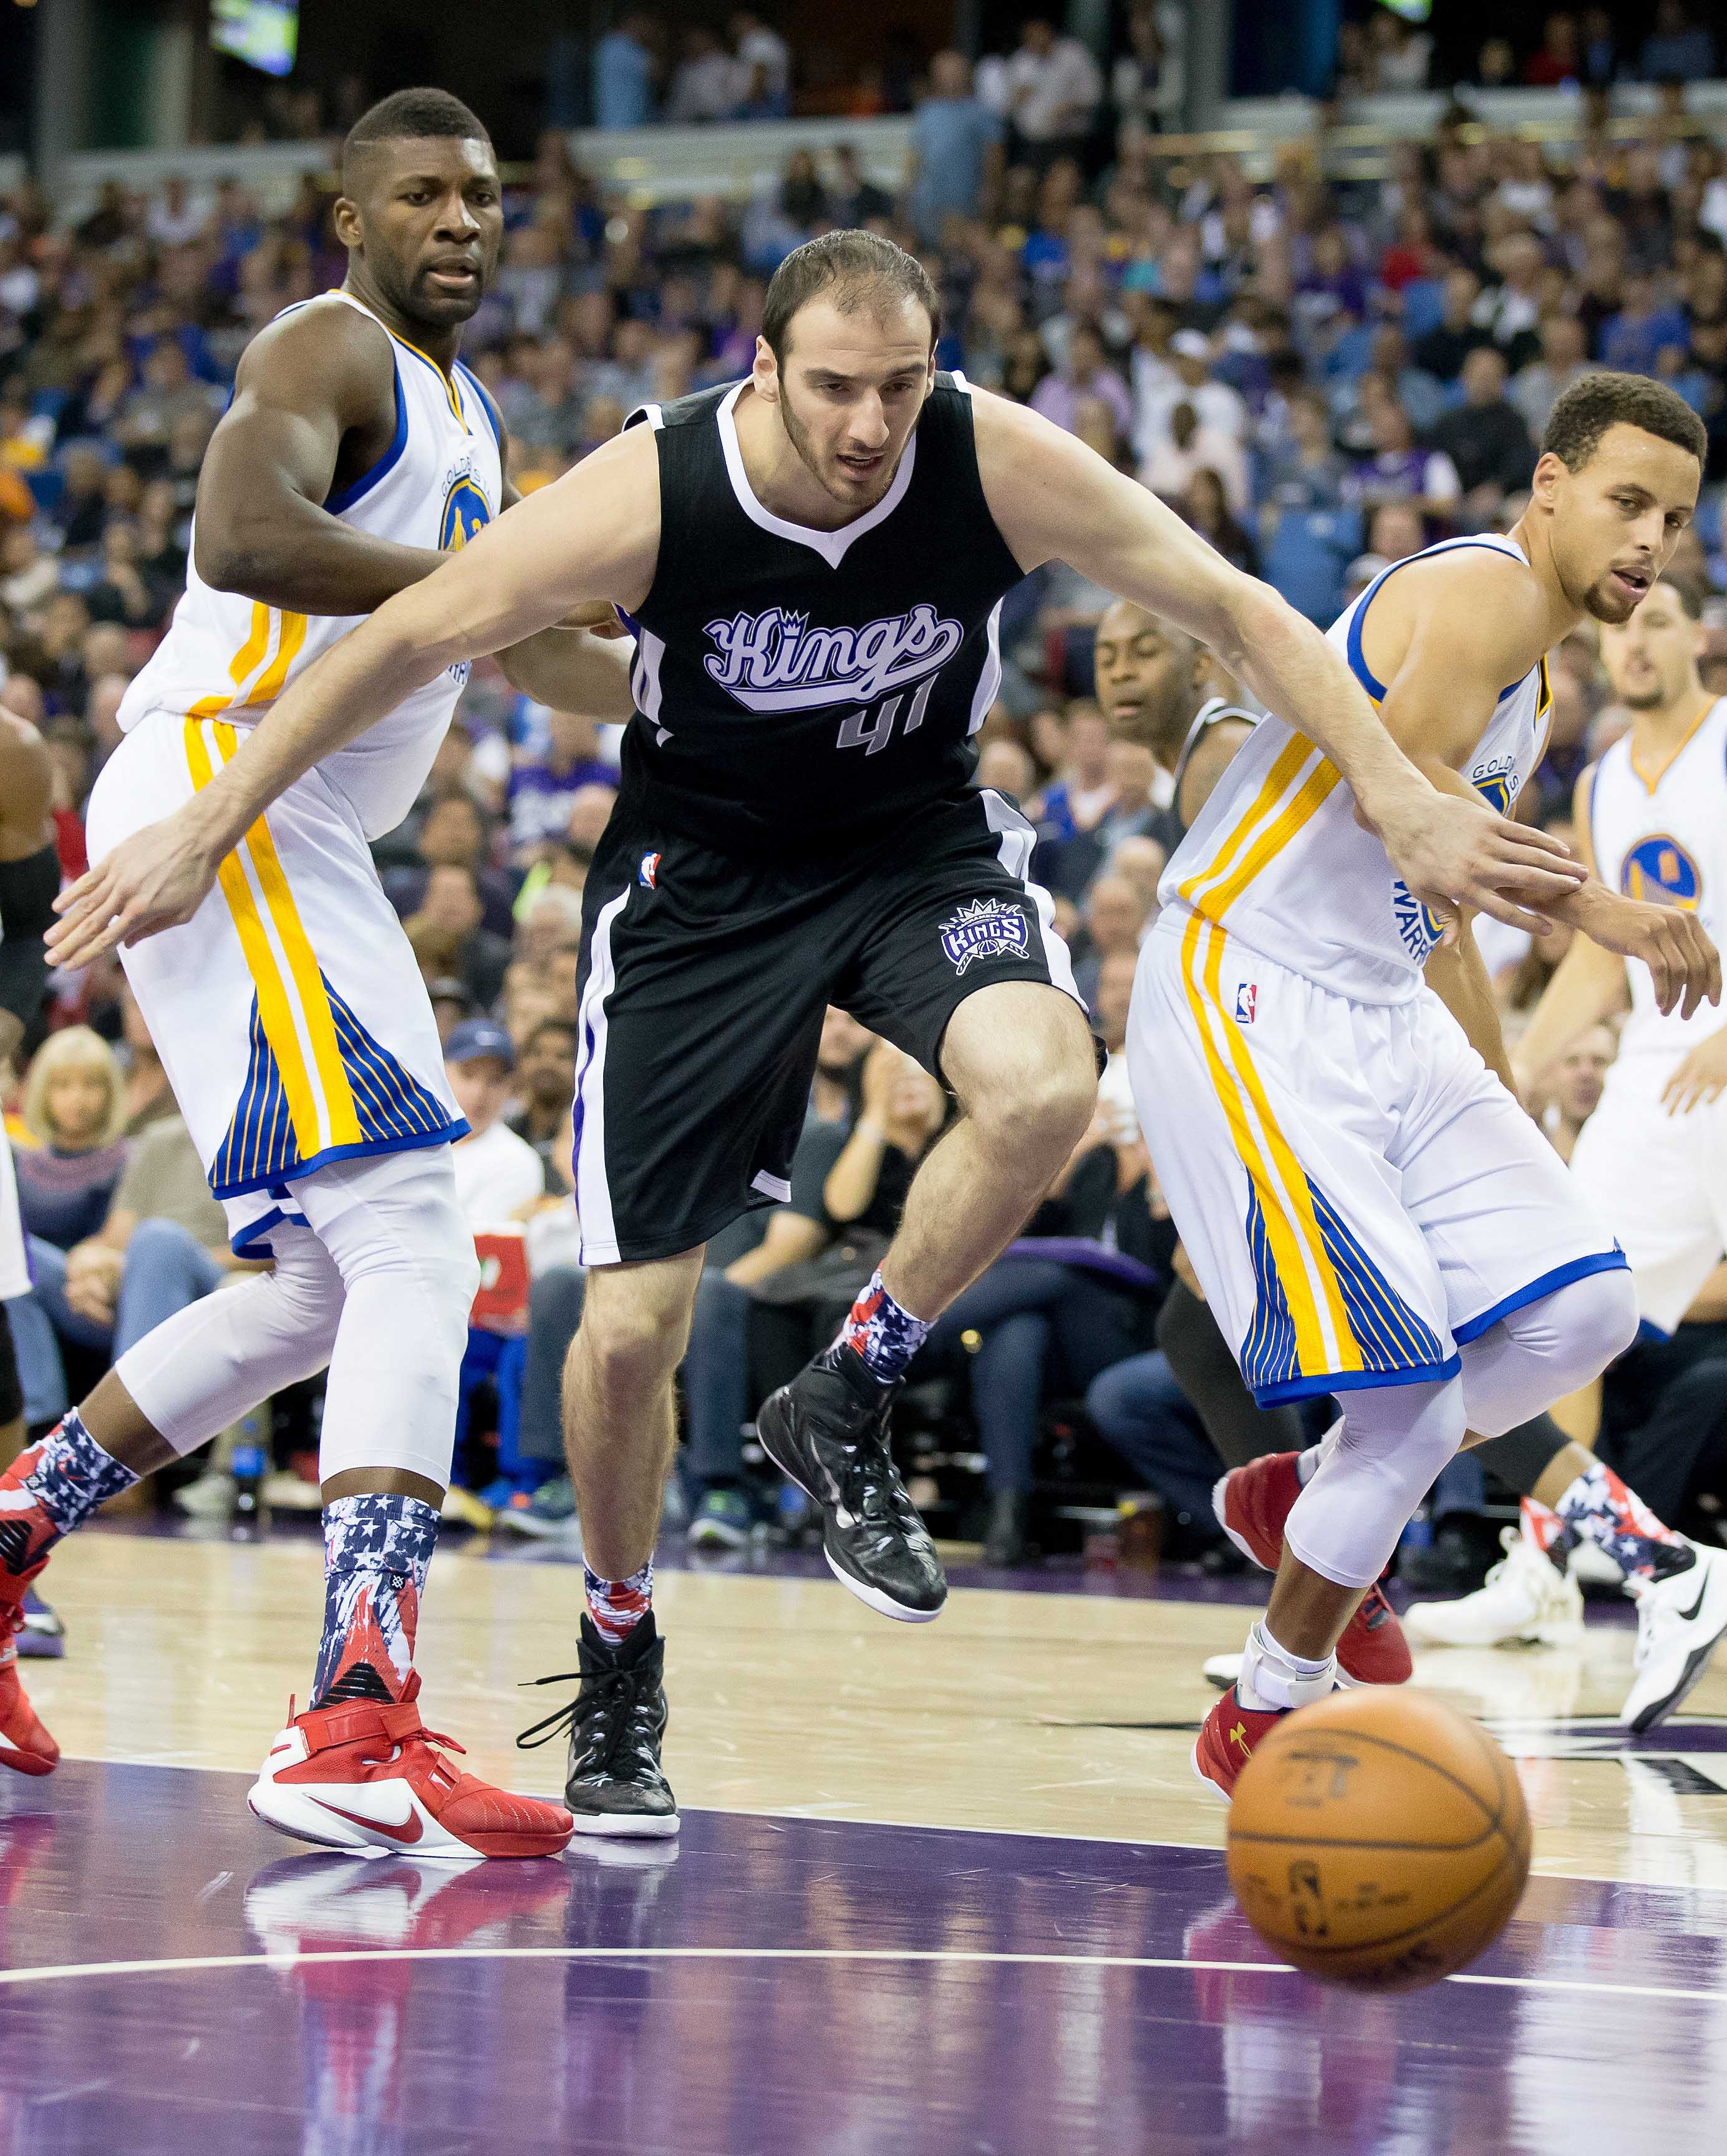 Are you willing to bet the farm on Kosta Koufos? Probably not.